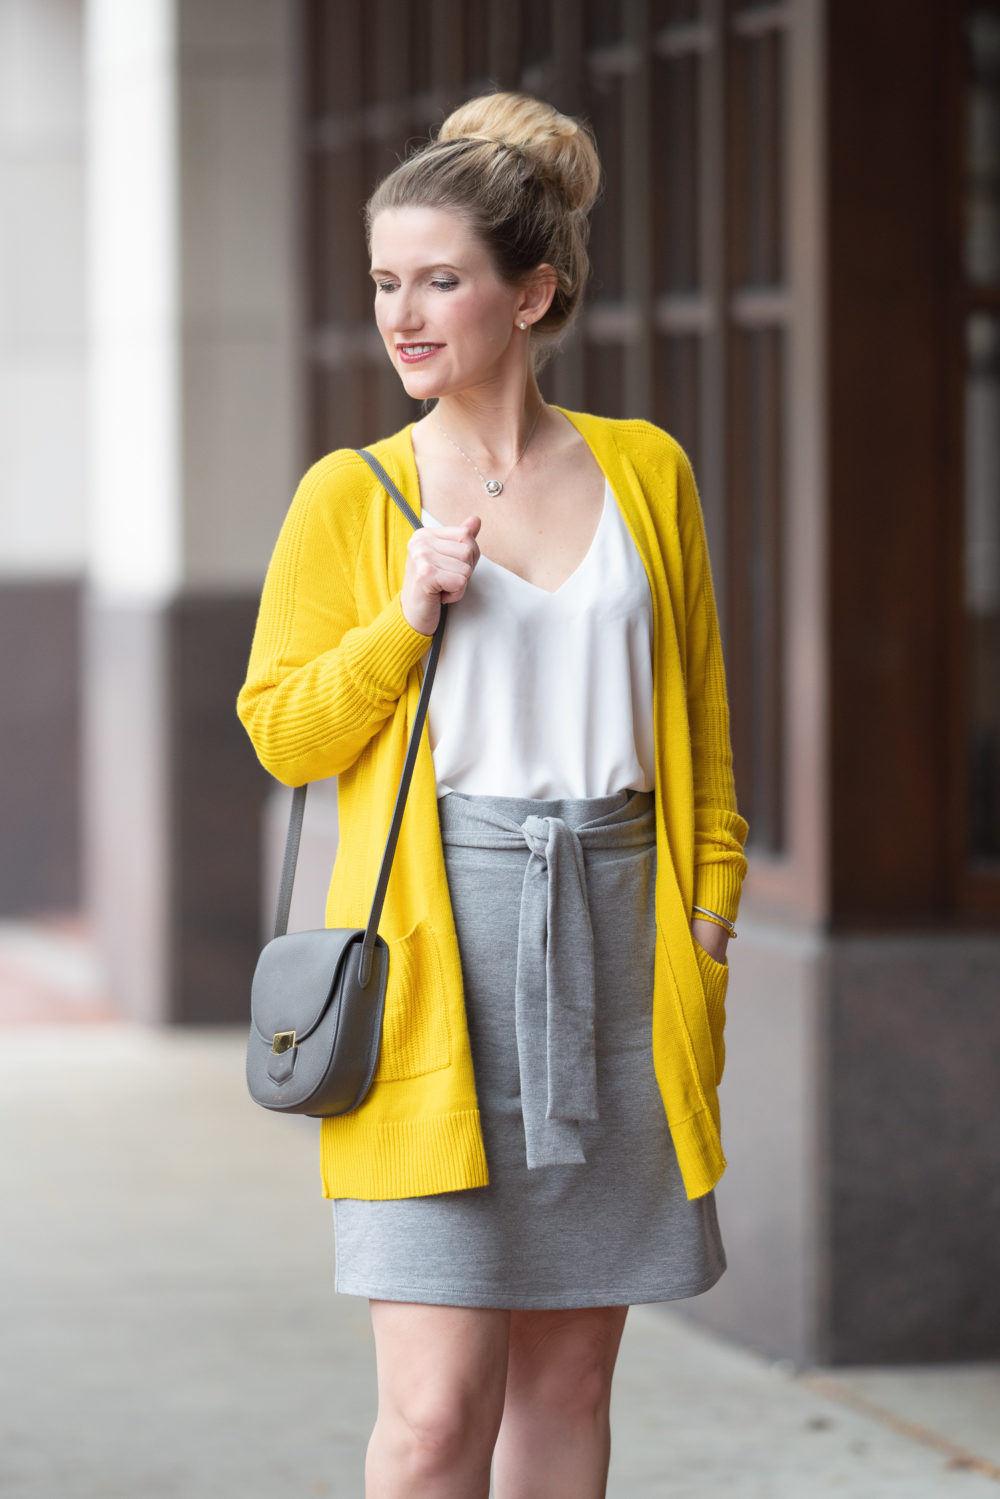 How To Wear Yellow And Instantly Brighten Your Day